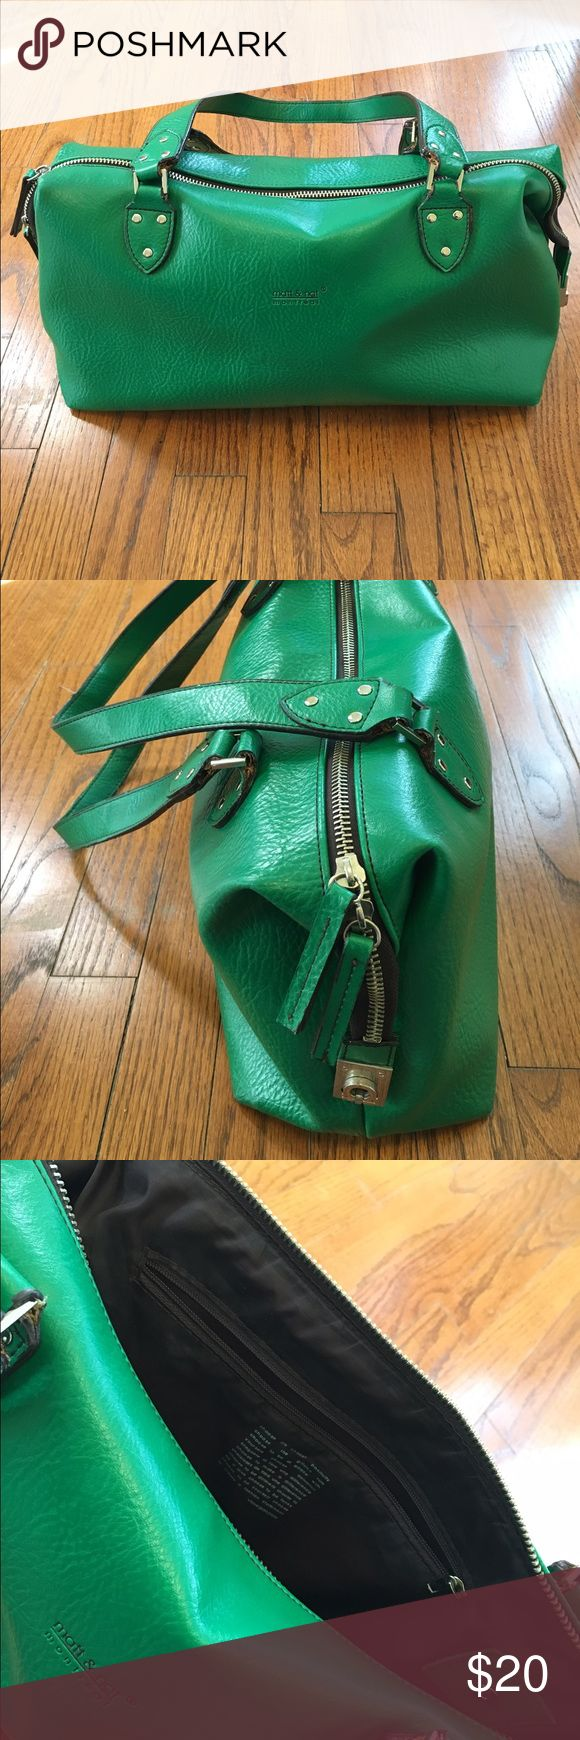 Matt and Nat Emerald Green Purse Another of my well cared for, beloved Matt and Nat bags ready for its next loving home. Awesome roomy purse with inside pocket and chunky metal hardware at ends giving this an edge. Has very mild wear on handle as you can see in photo. Matt and Nat Bags Satchels